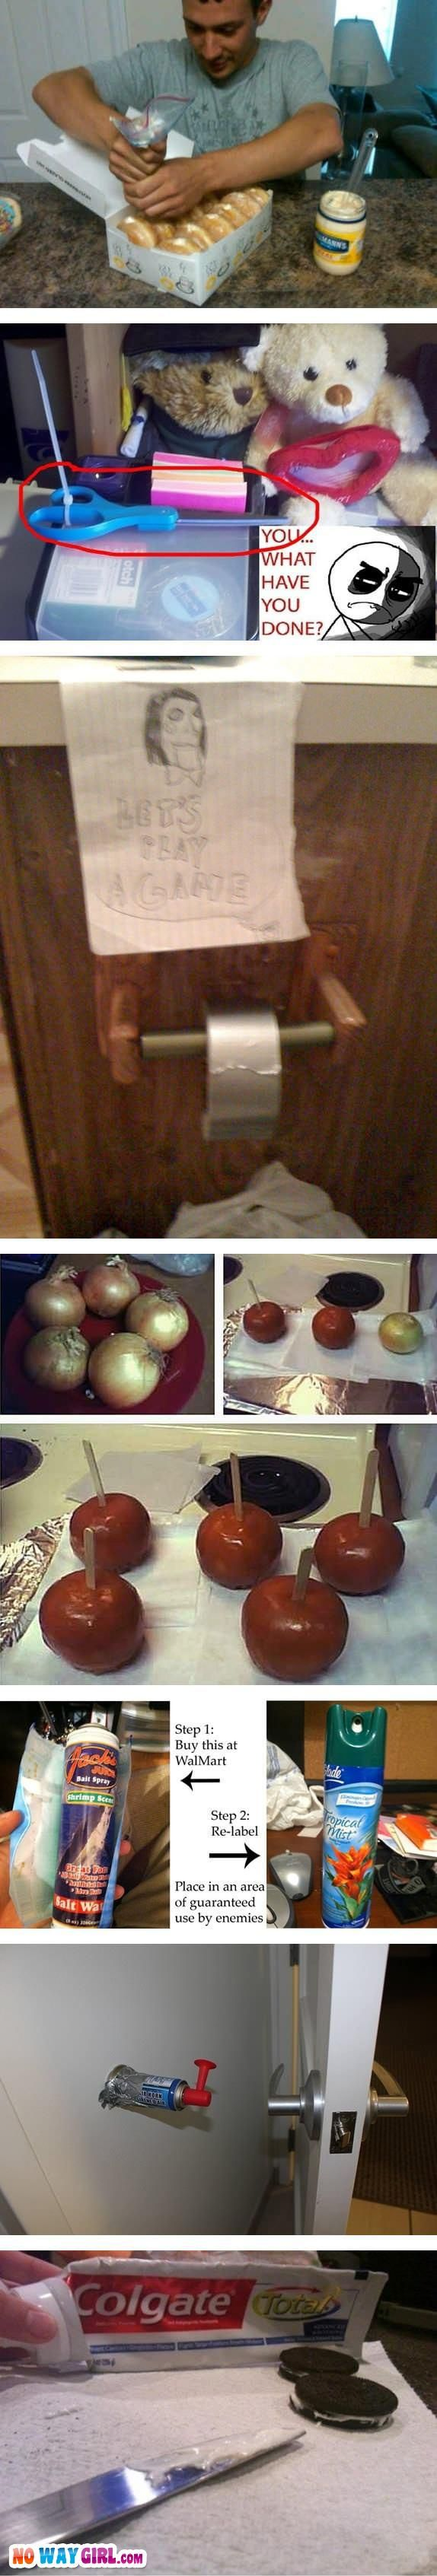 Great prank ideas!